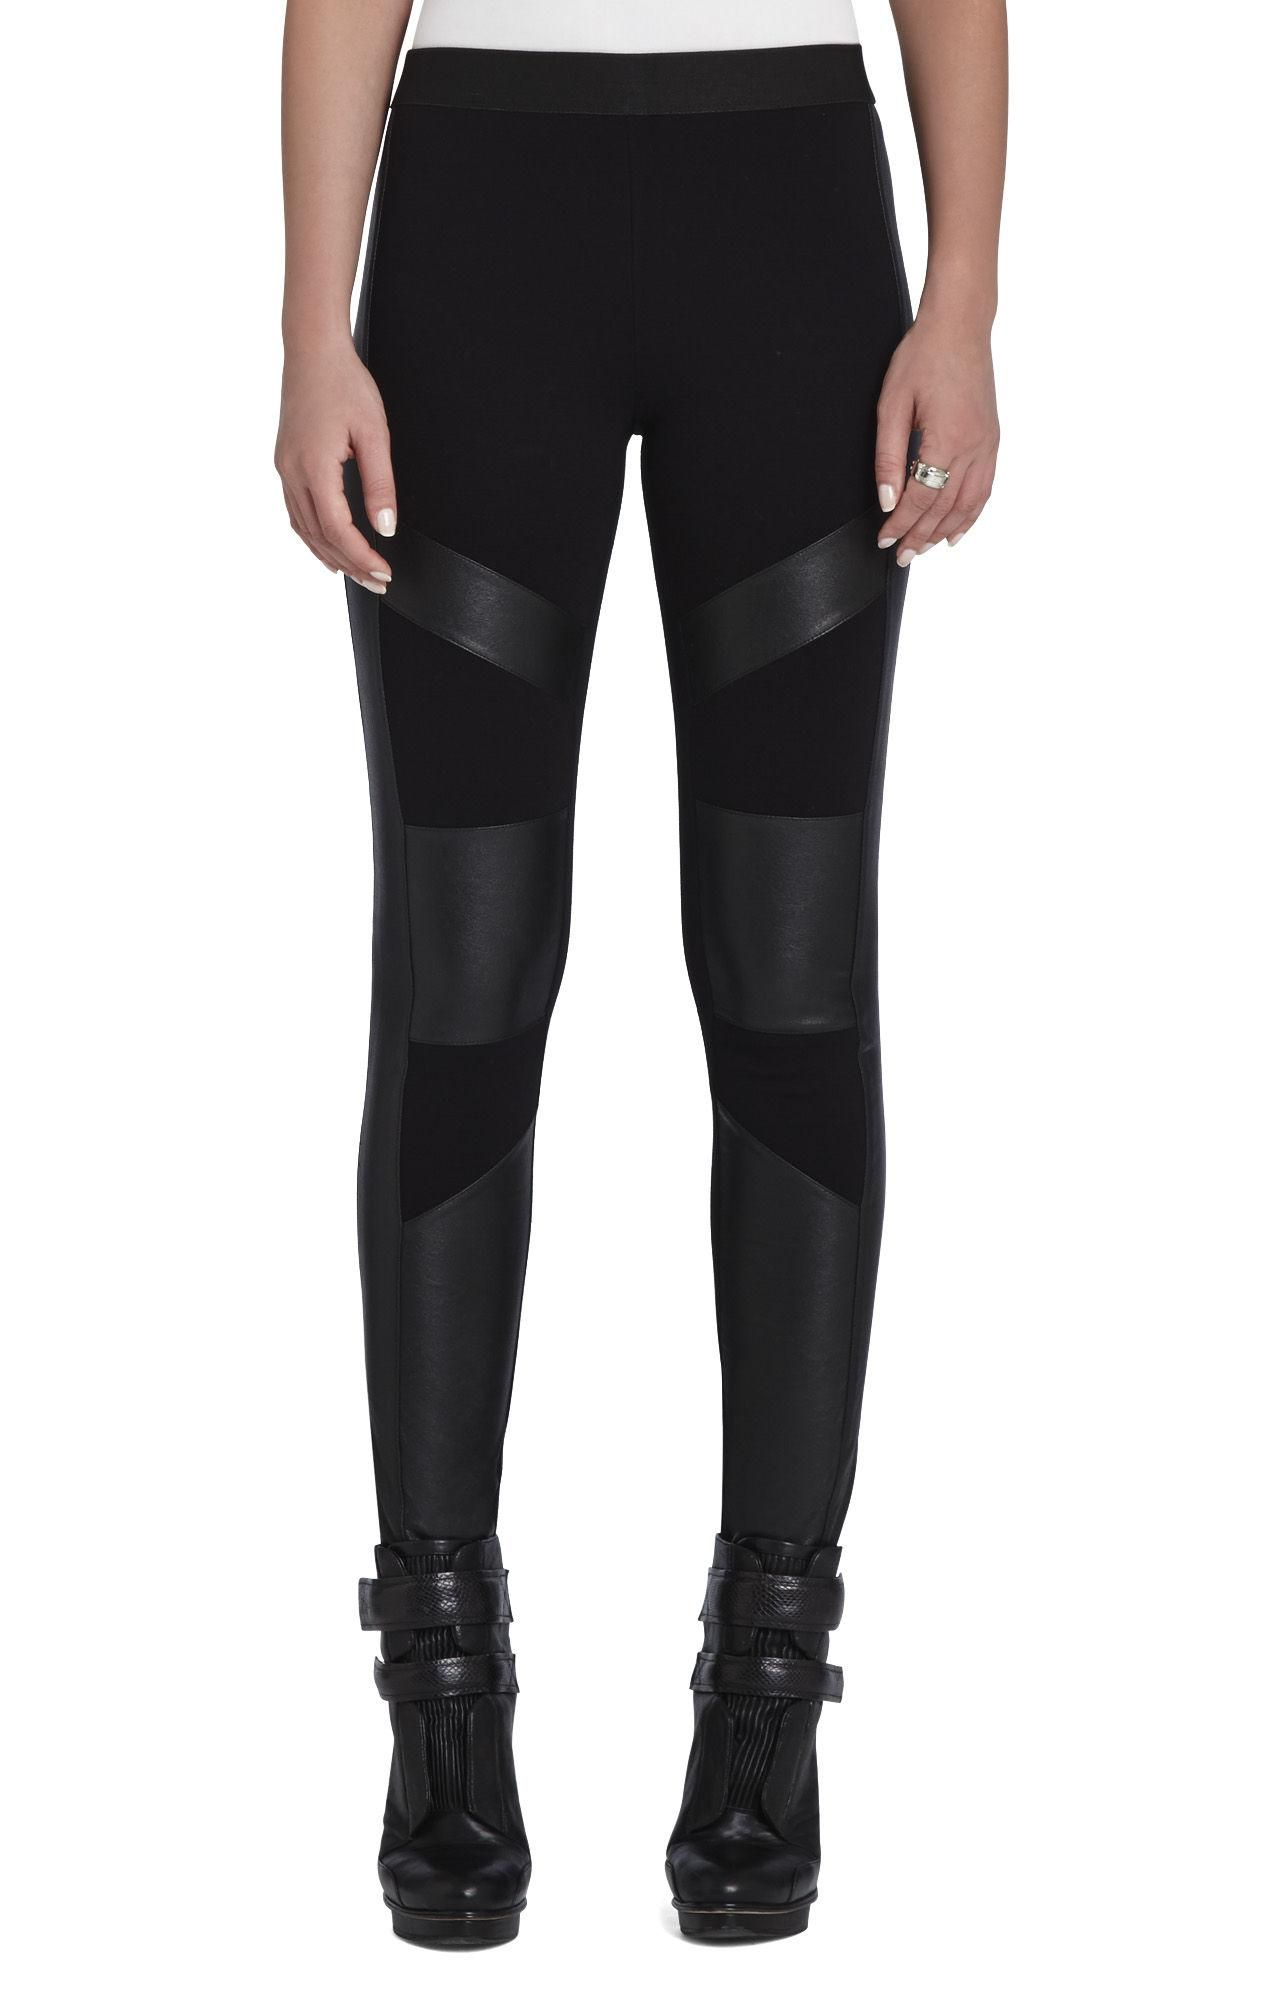 876032a89abd9c Black leggings with pleather details super cute and trending ...